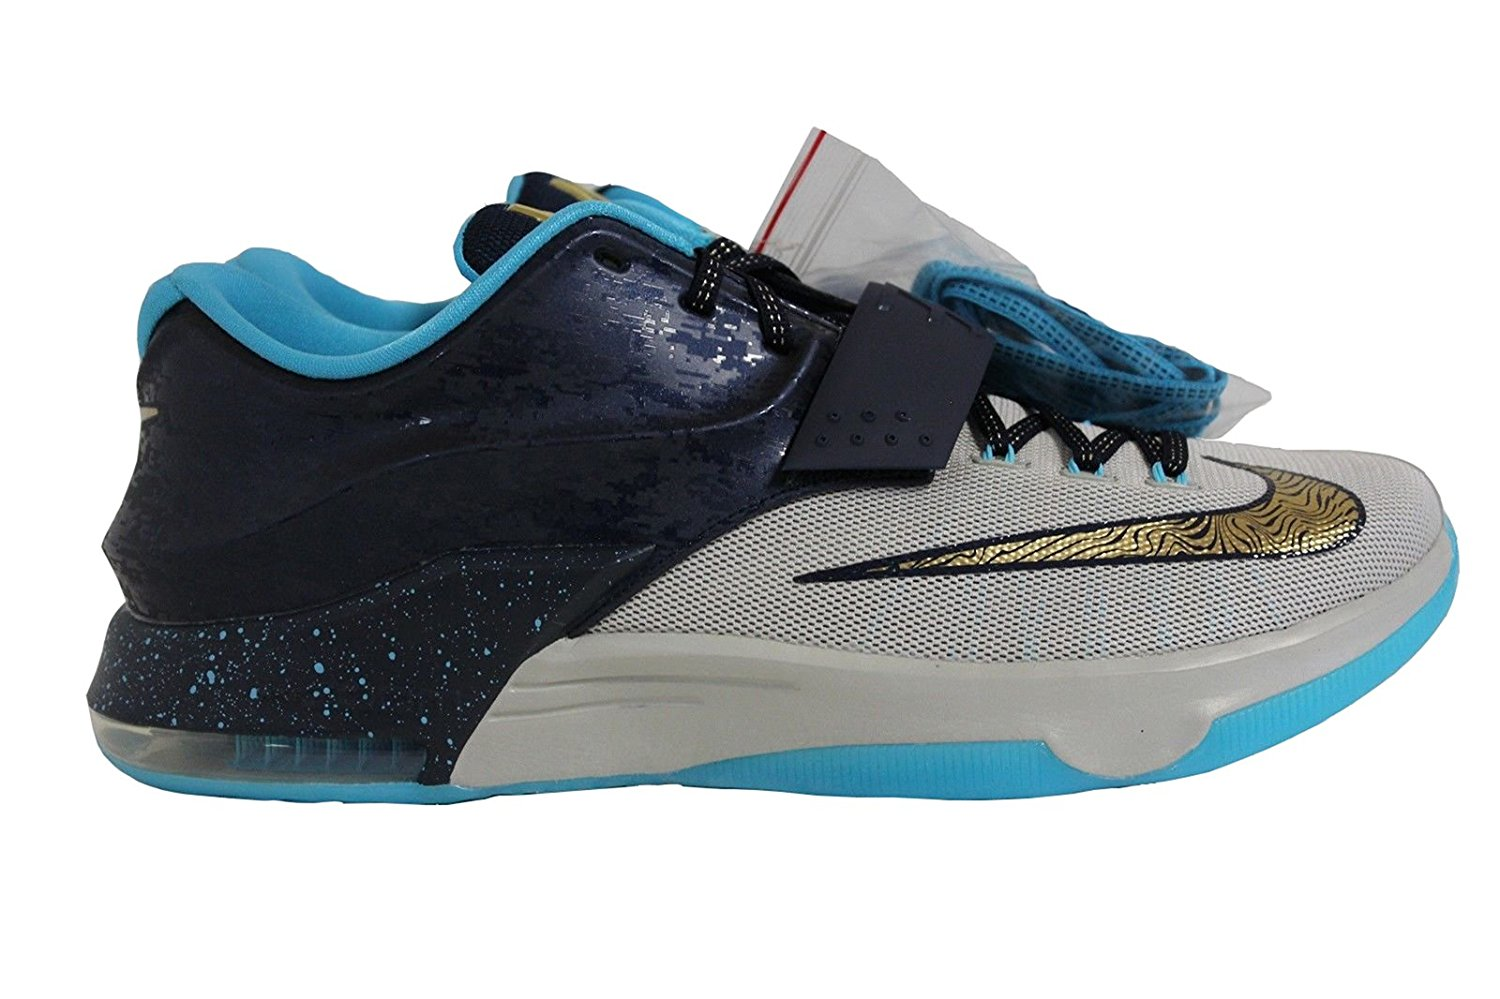 reputable site 8c61d 0d14c Nike KD VII Girl s EYBL Promo Sample Olympic Gold Kevin Durant 669942-474